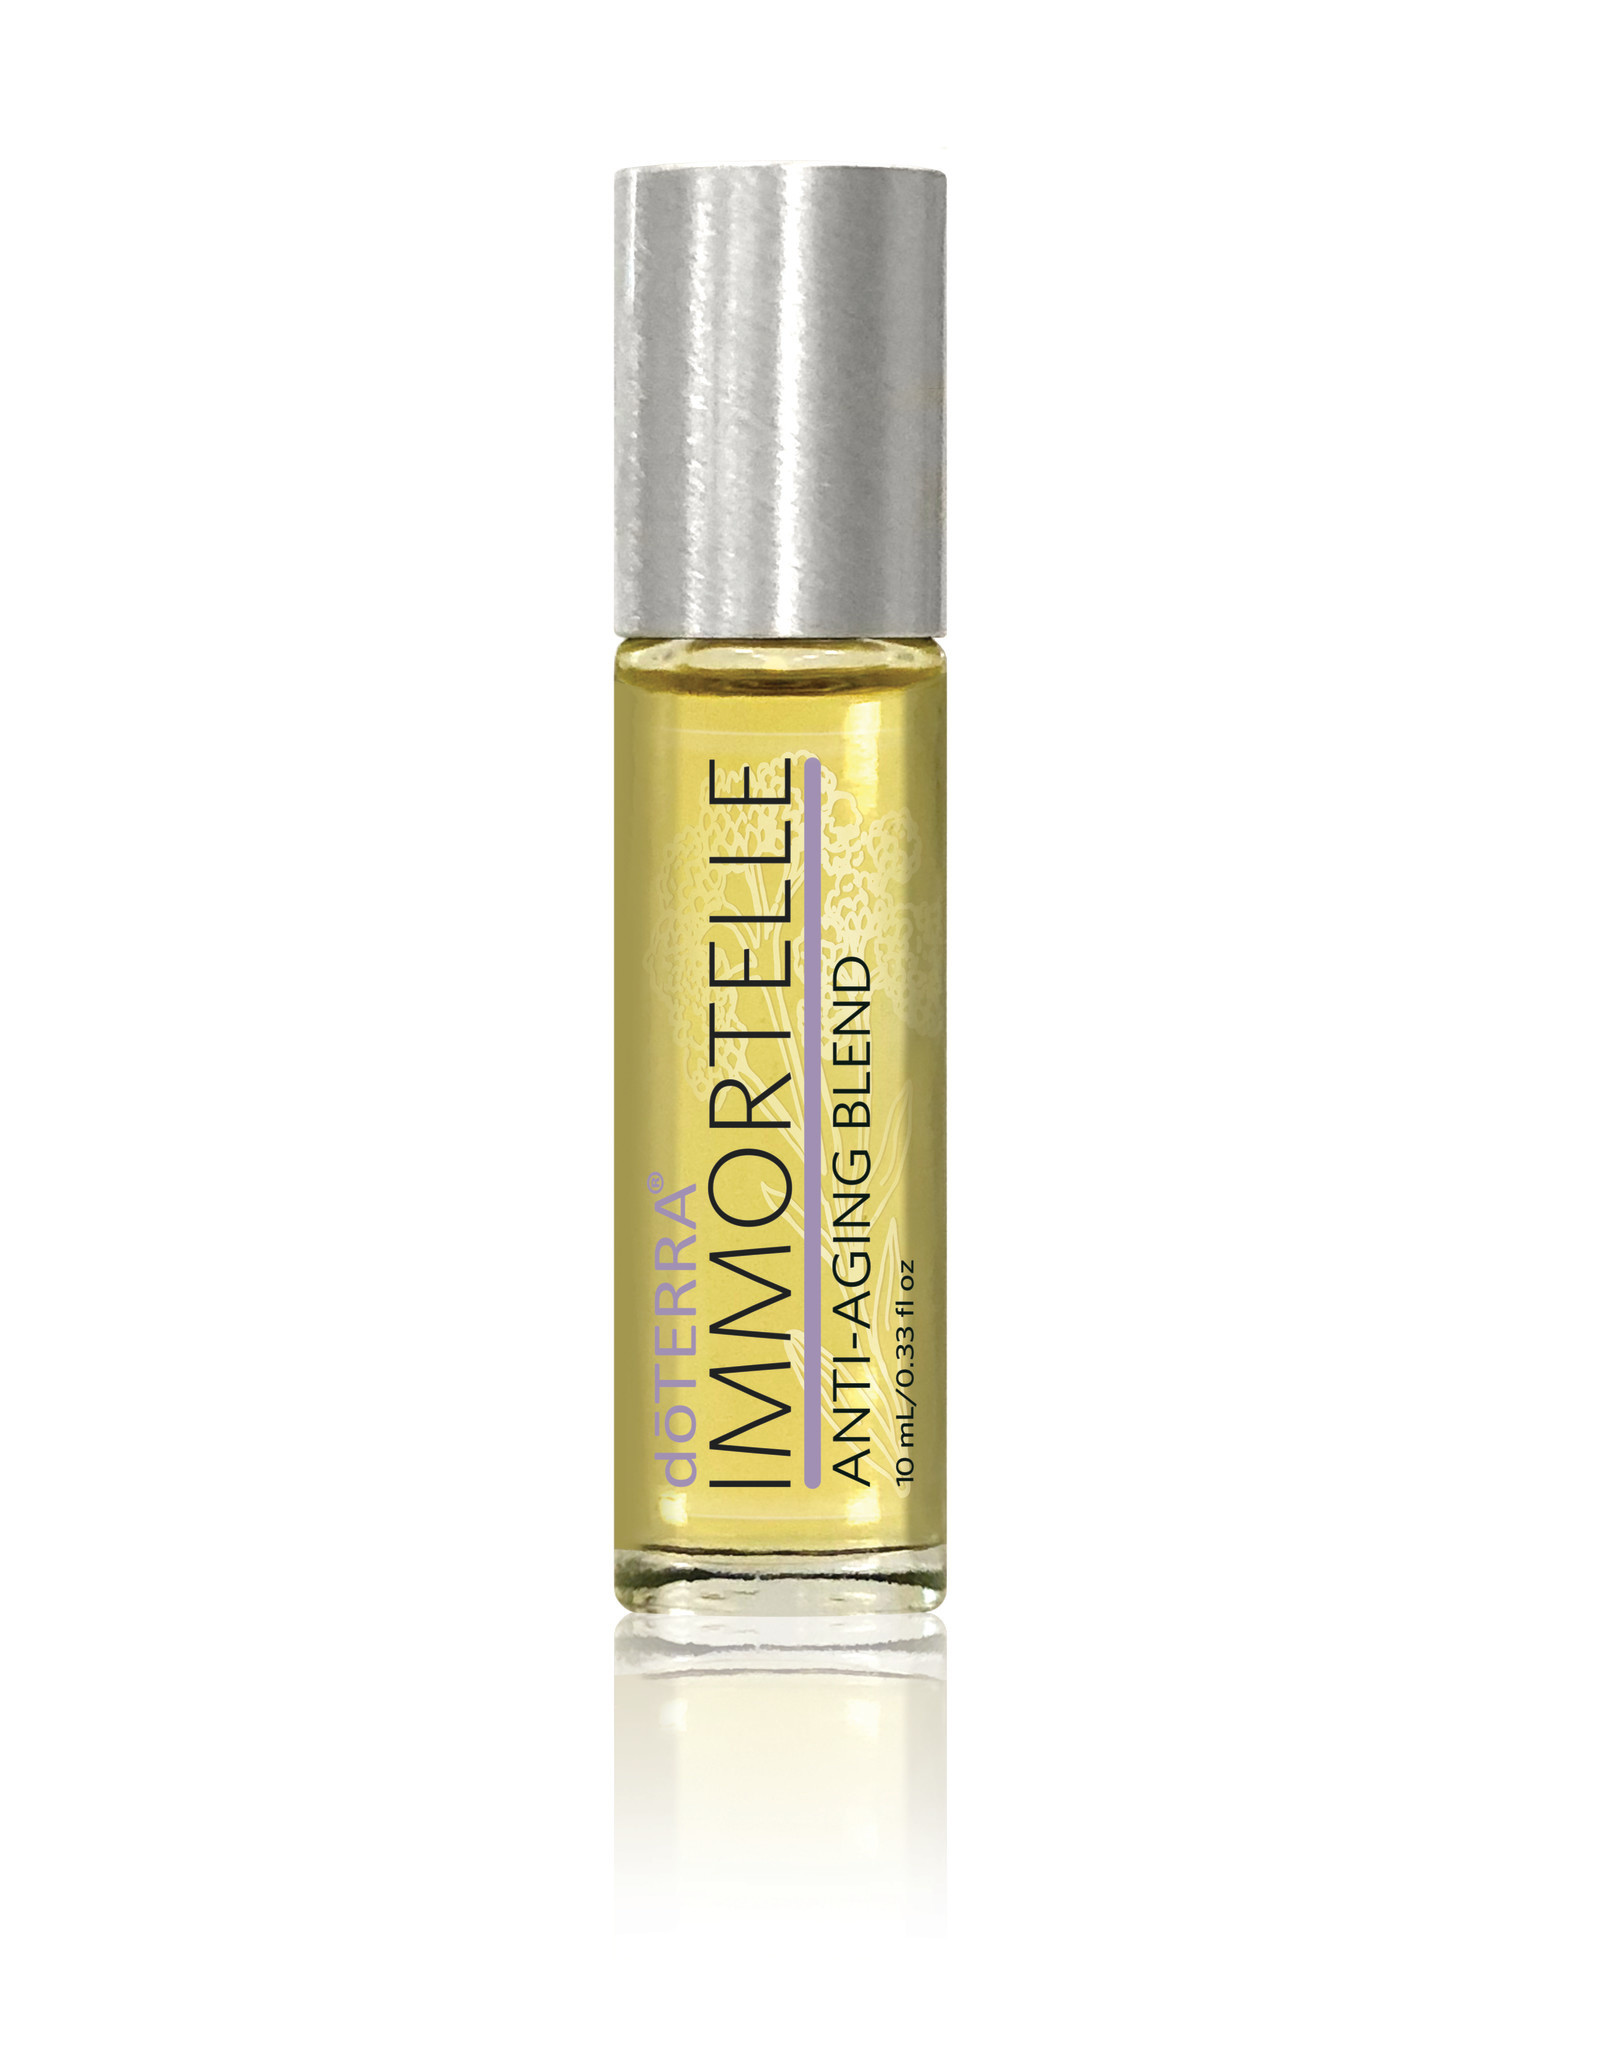 doTERRA doTERRA Immortelle - Anti-Aging Blend (10mL)